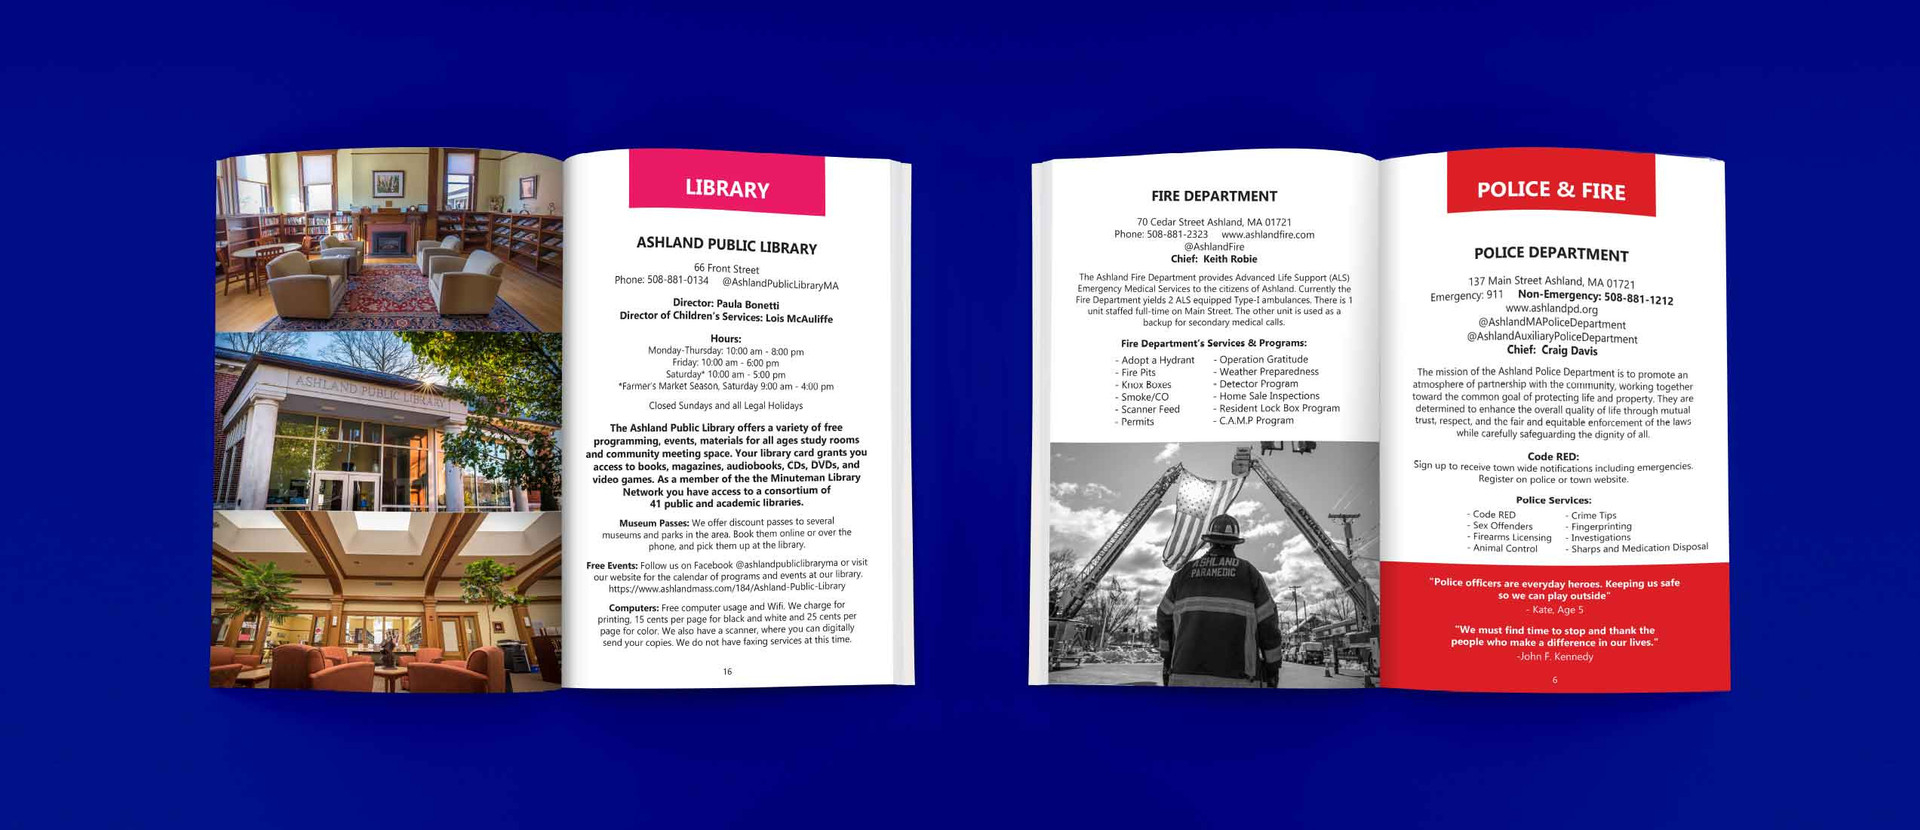 TOWN GUIDE, PRINT DESIGN, BOOKLET